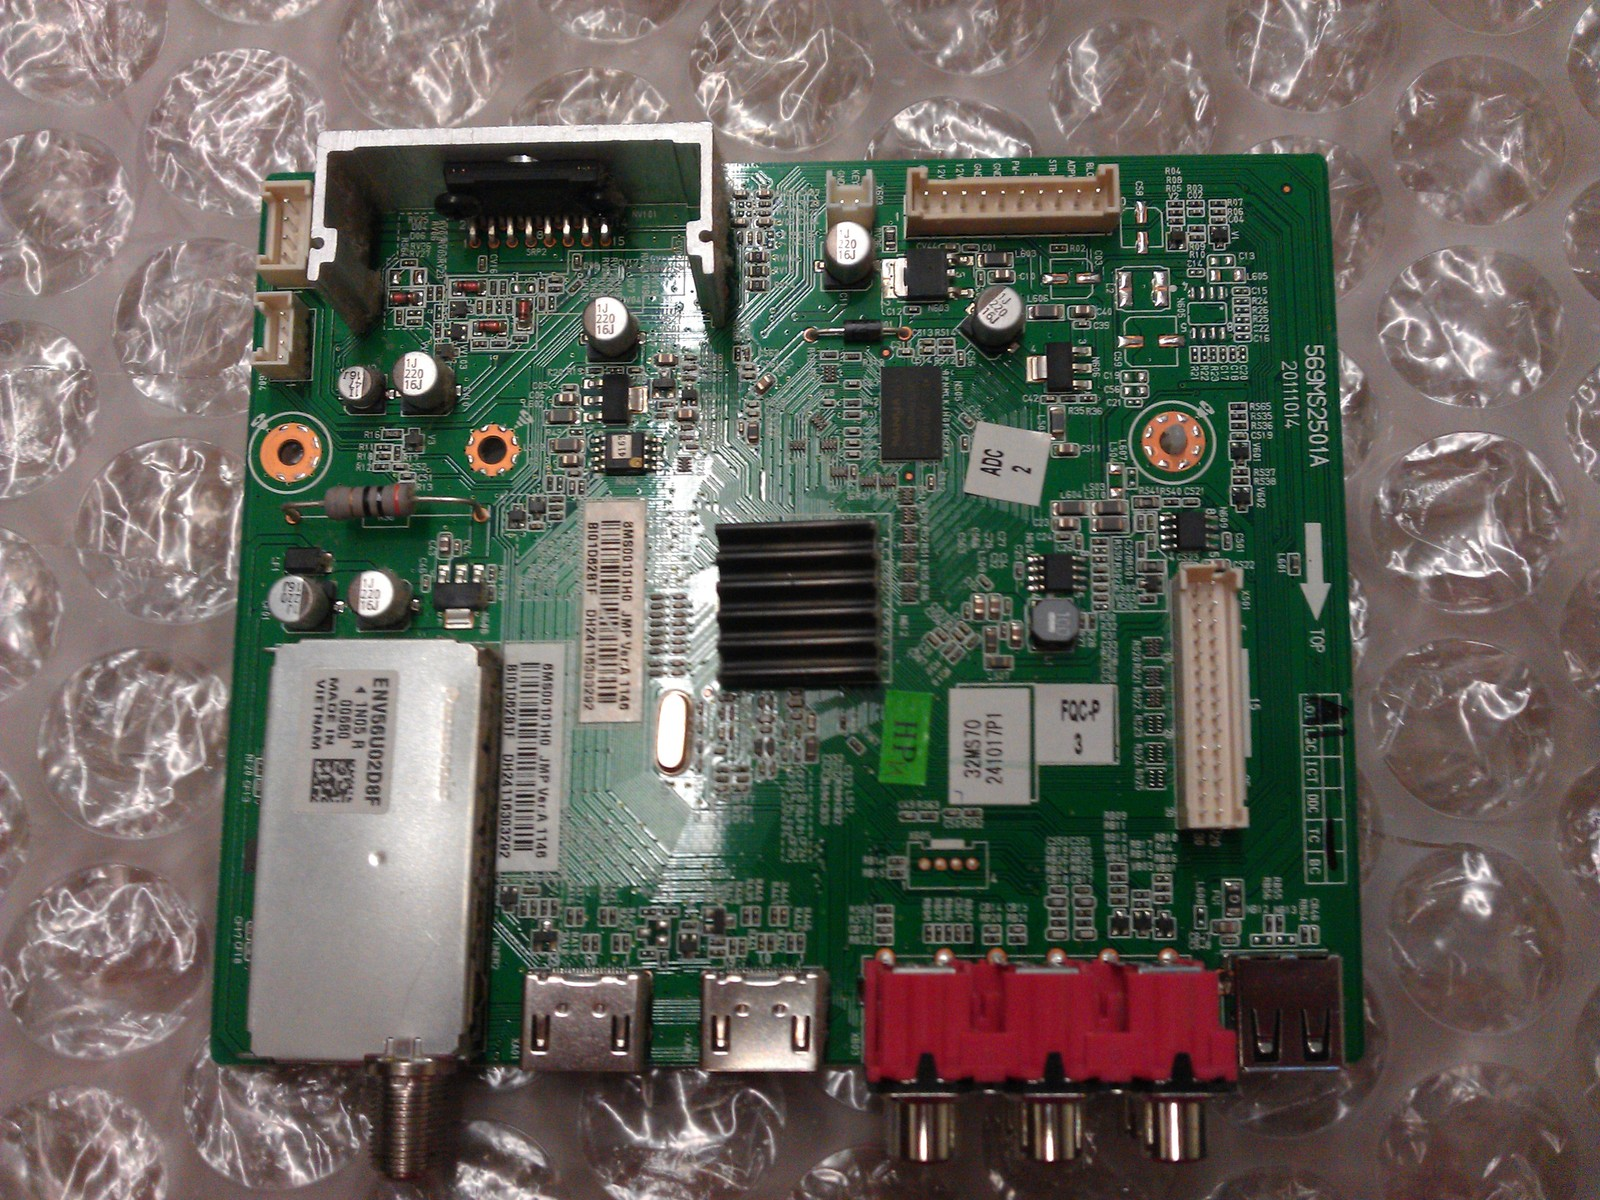 6MS00101H0 Main Board From Dynex DX-32L200A12 LCD TV